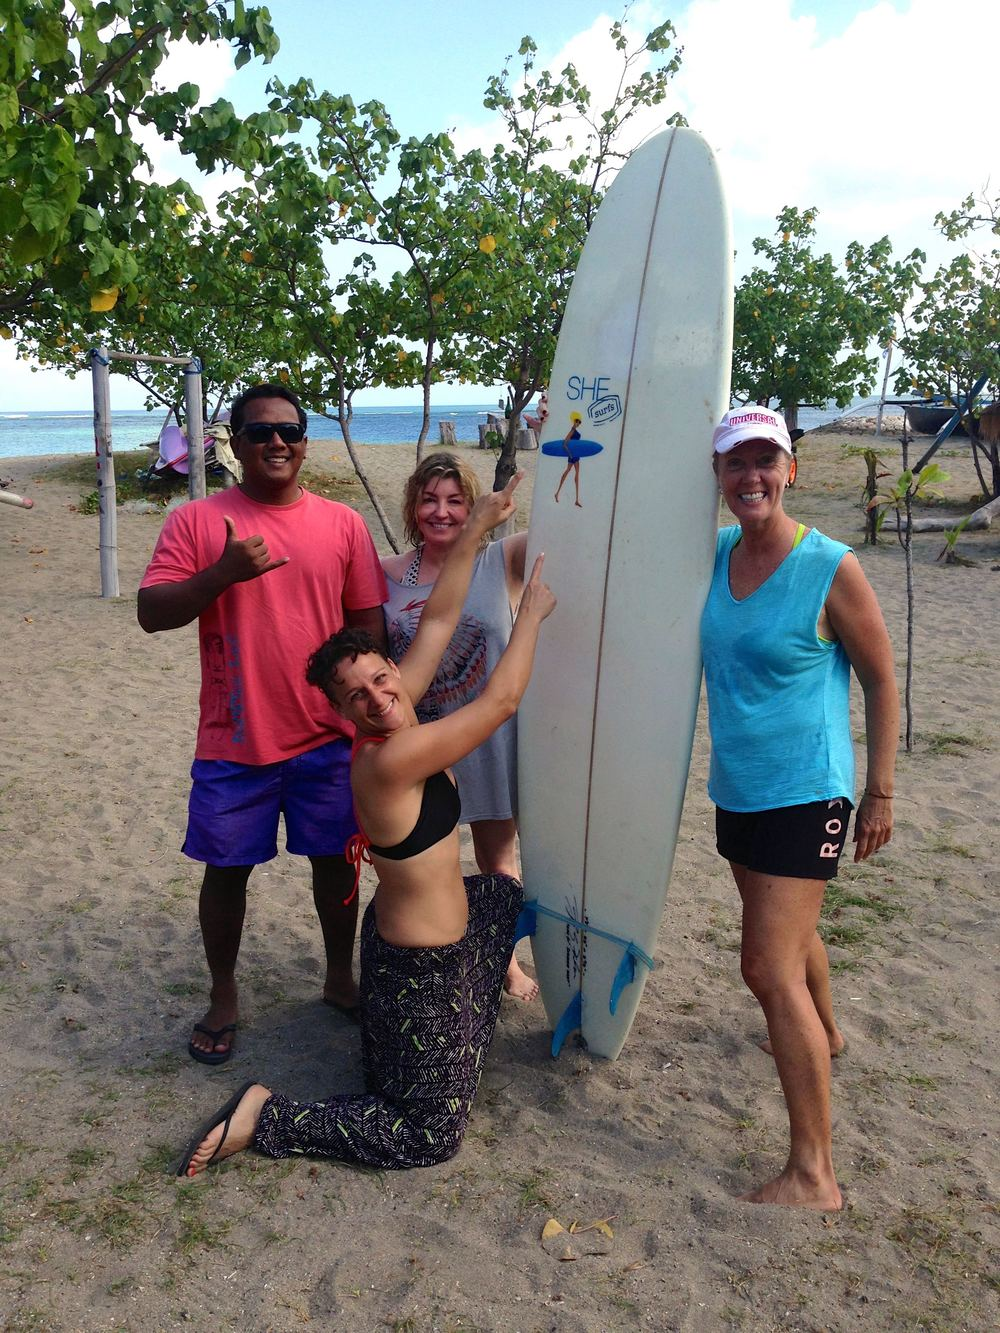 Celebrating after another awesome surf session on kuta reef with our little surfing family